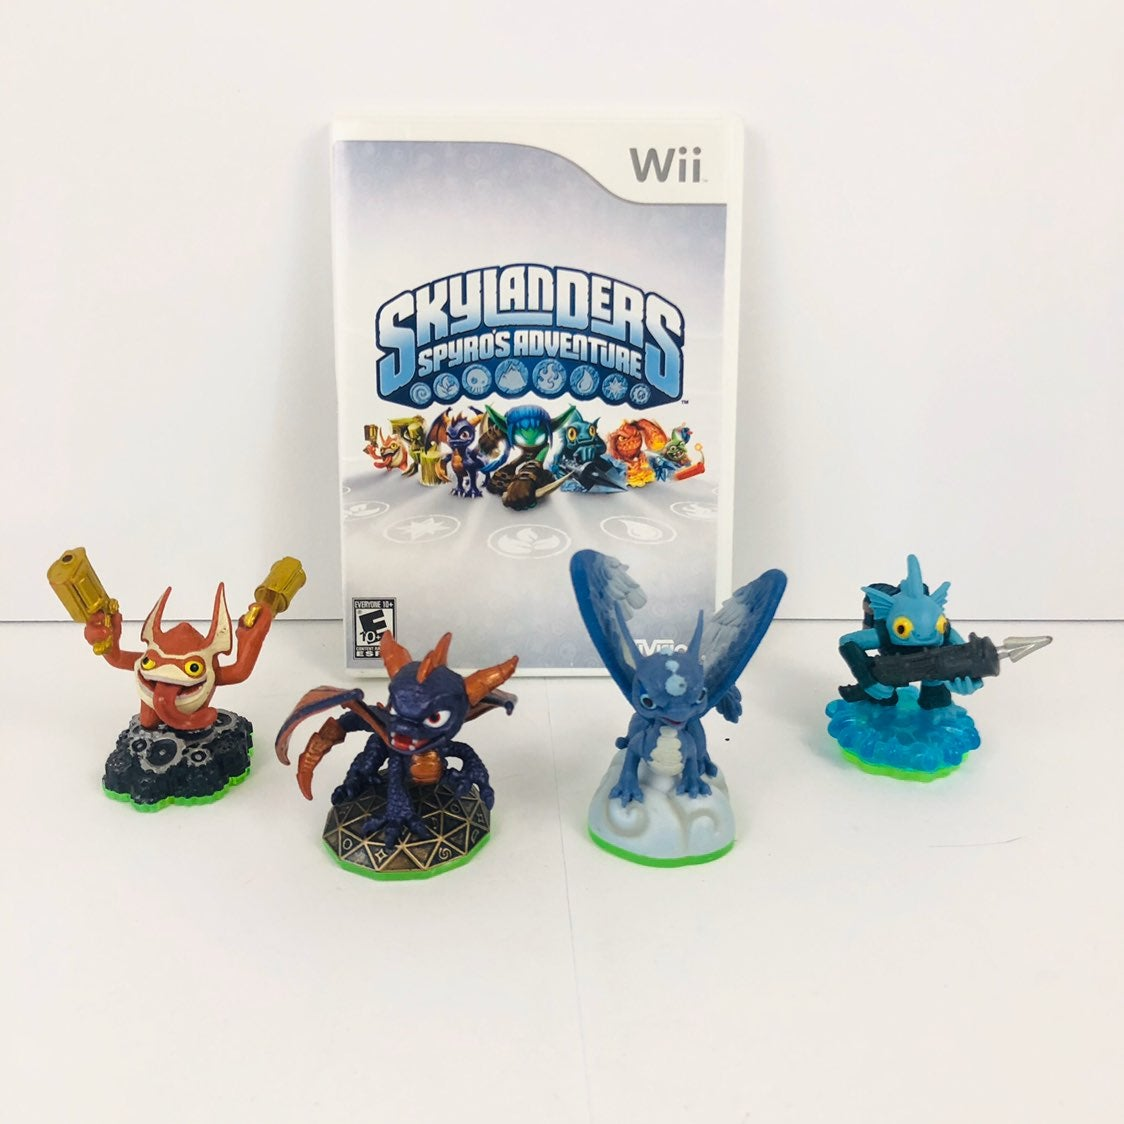 Skylanders Spyro Adventure Wii Game Set